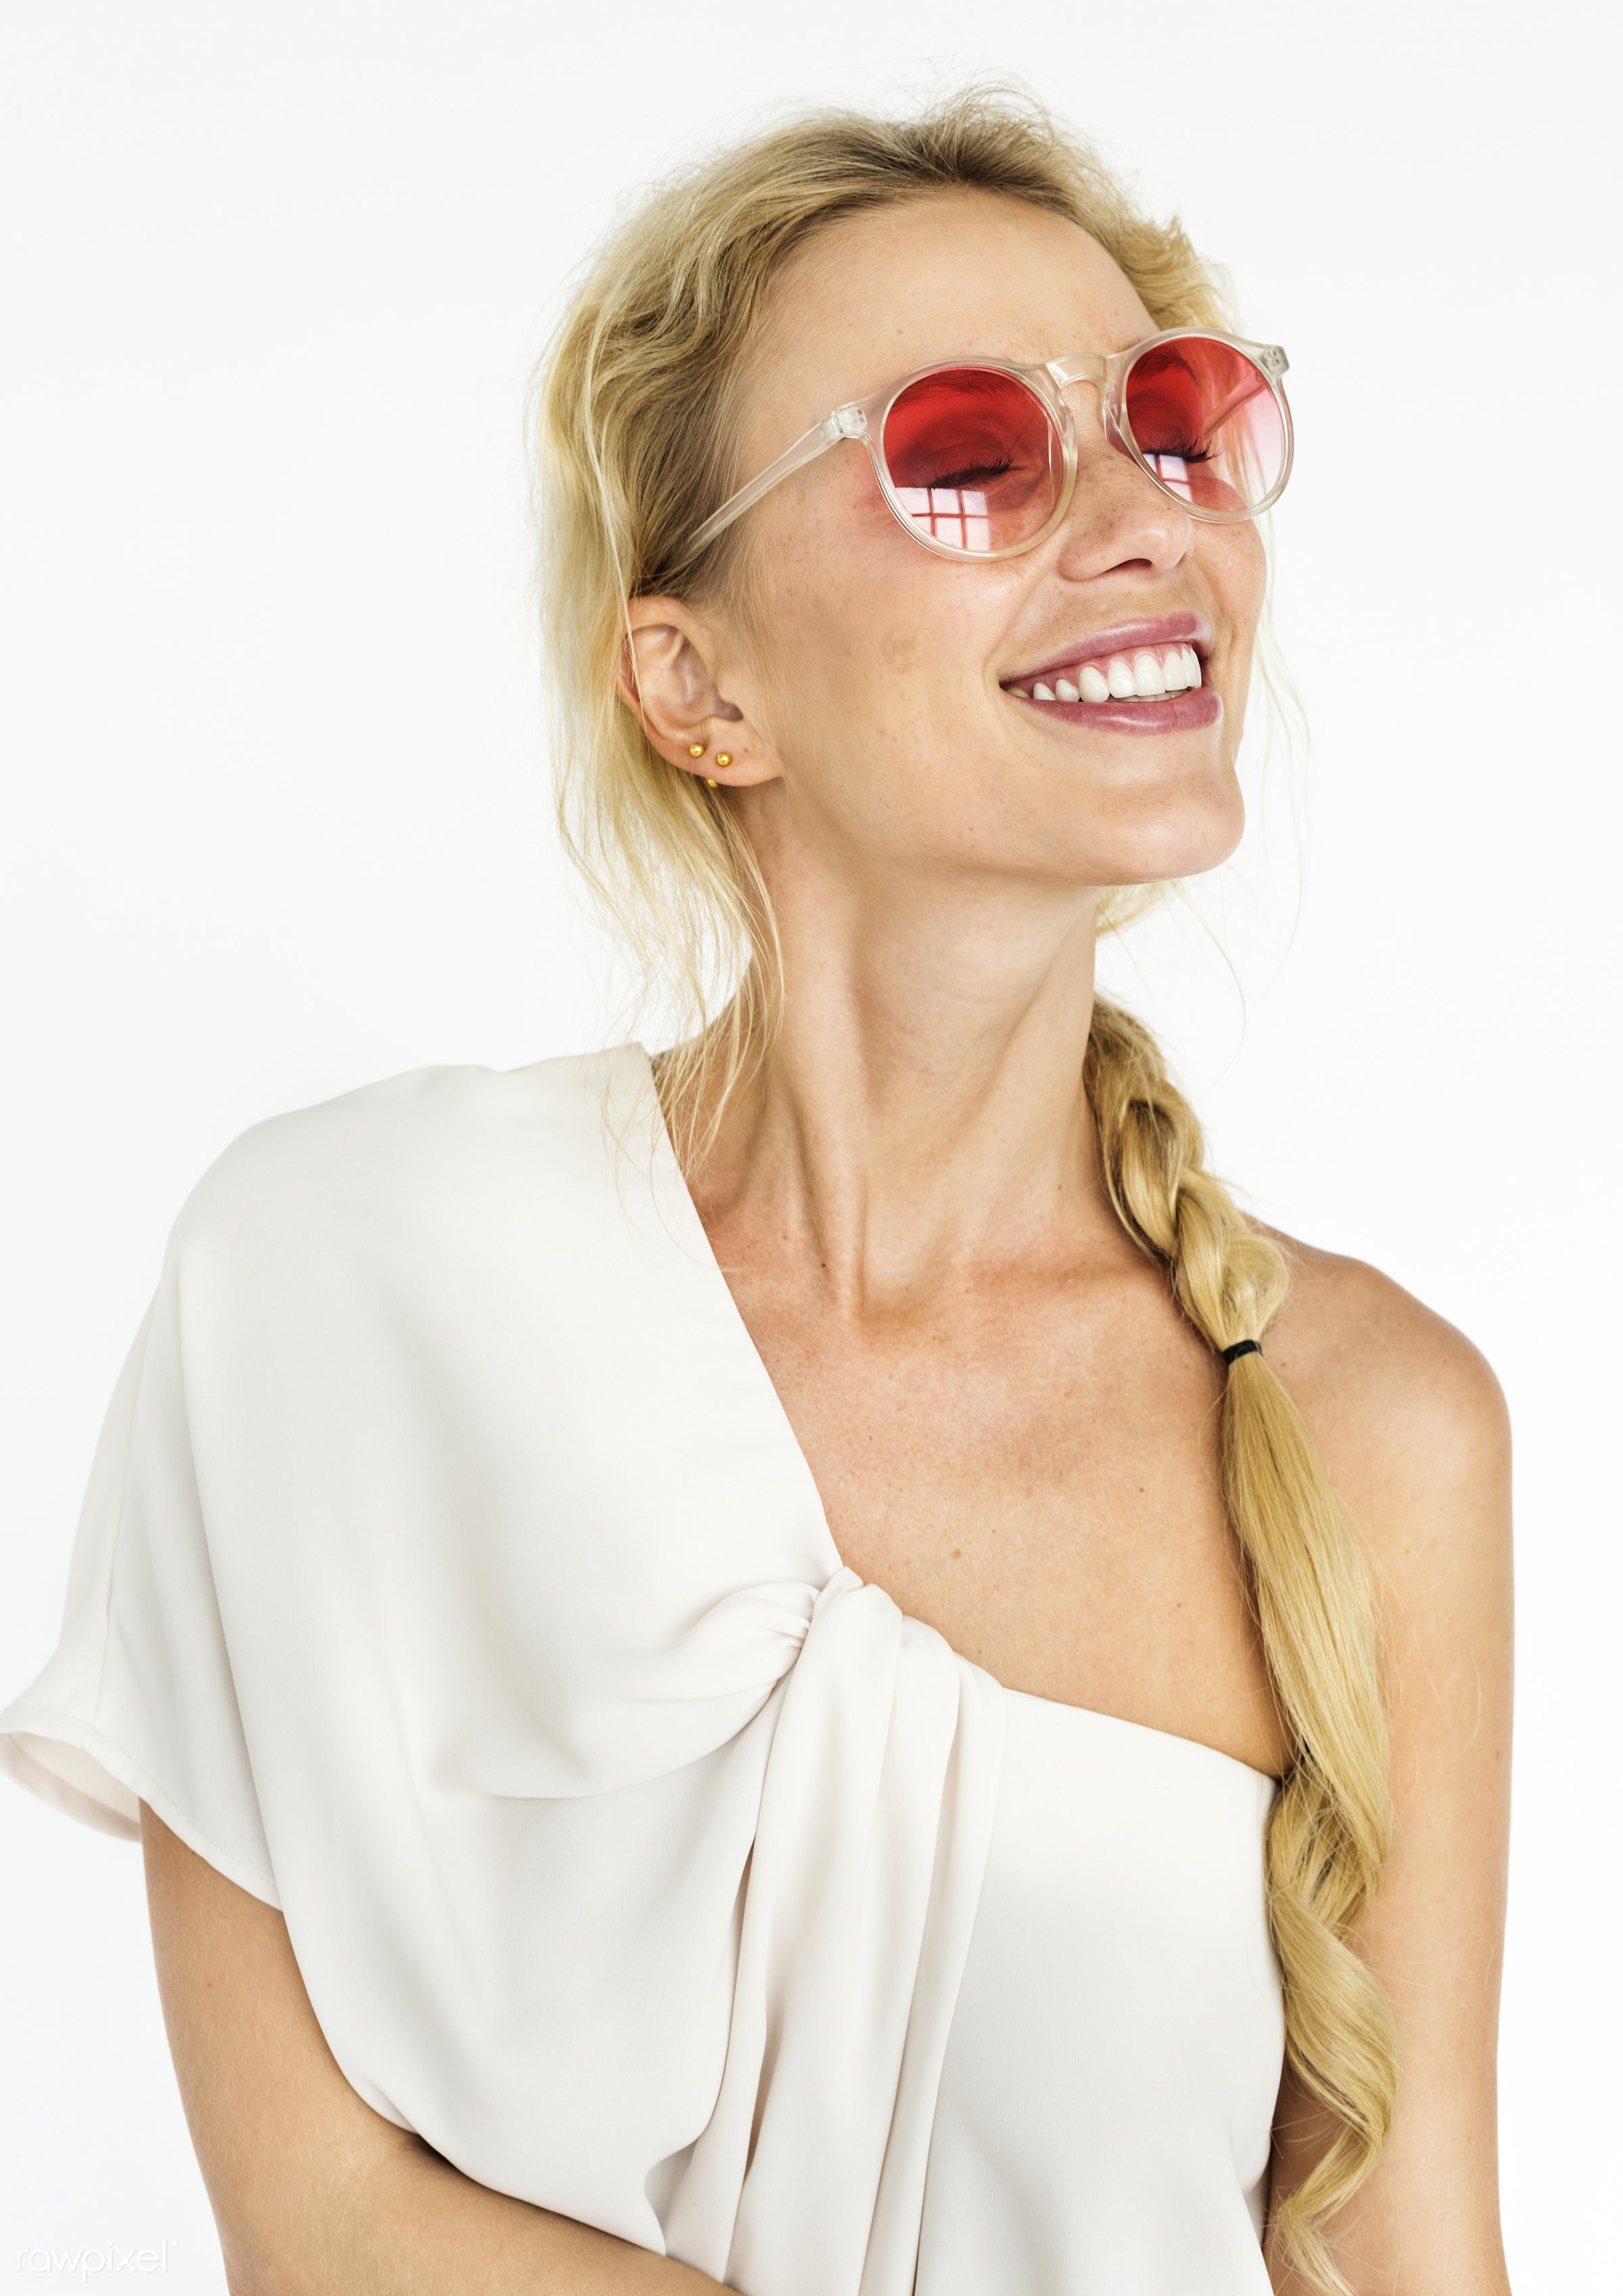 expression, studio, person, people, woman, cheerful, smiling, isolated, white, happiness, youth, sunglasses, portrait,...